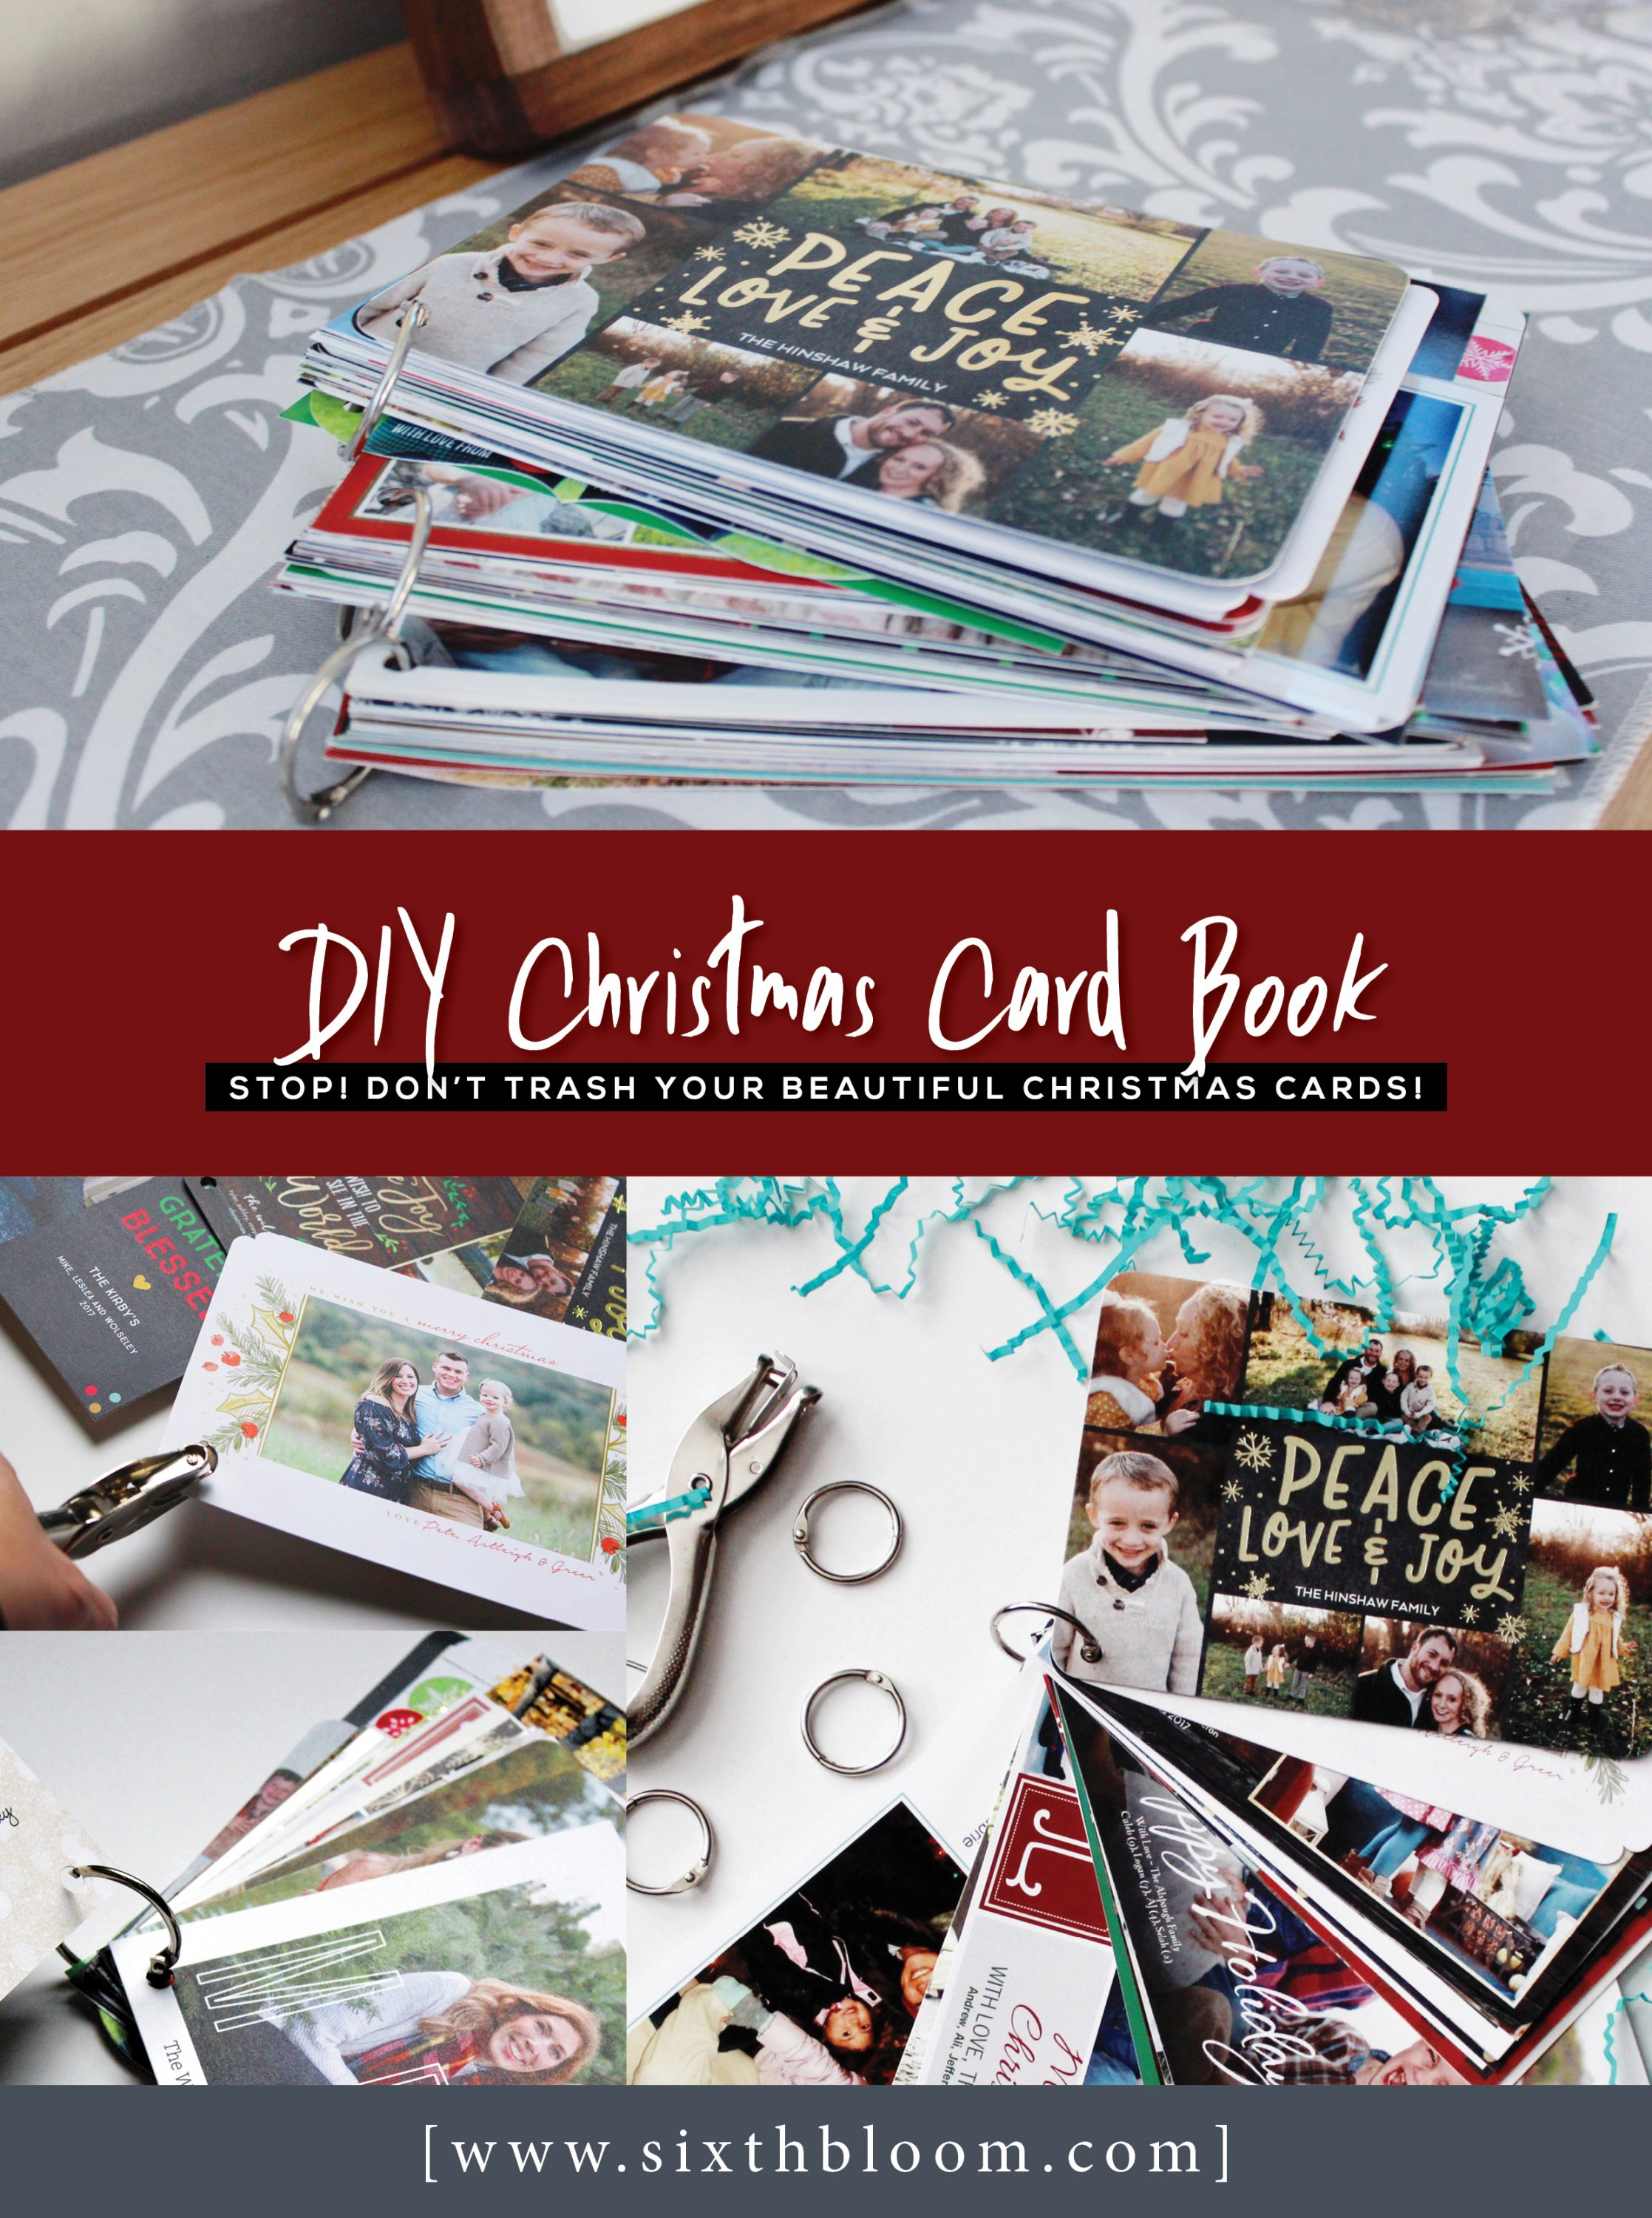 DIY Christmas Card Book